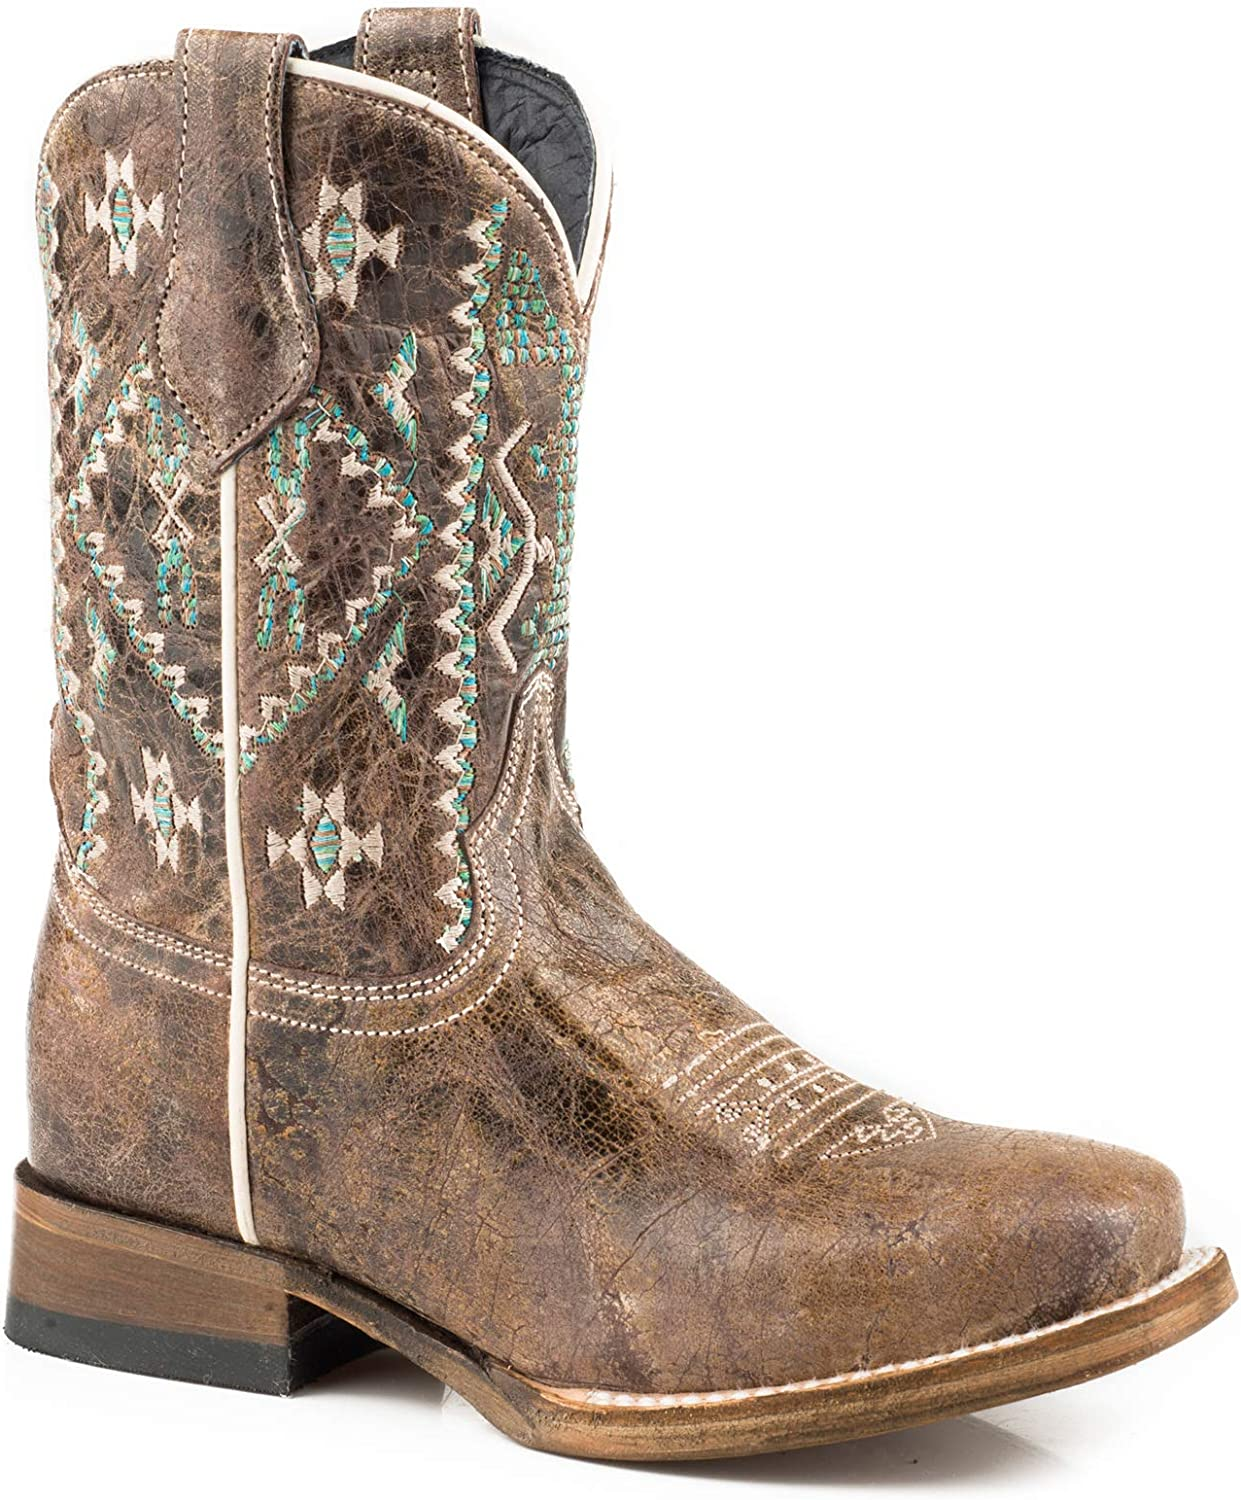 Roper Kids Out West Square Toe Boots